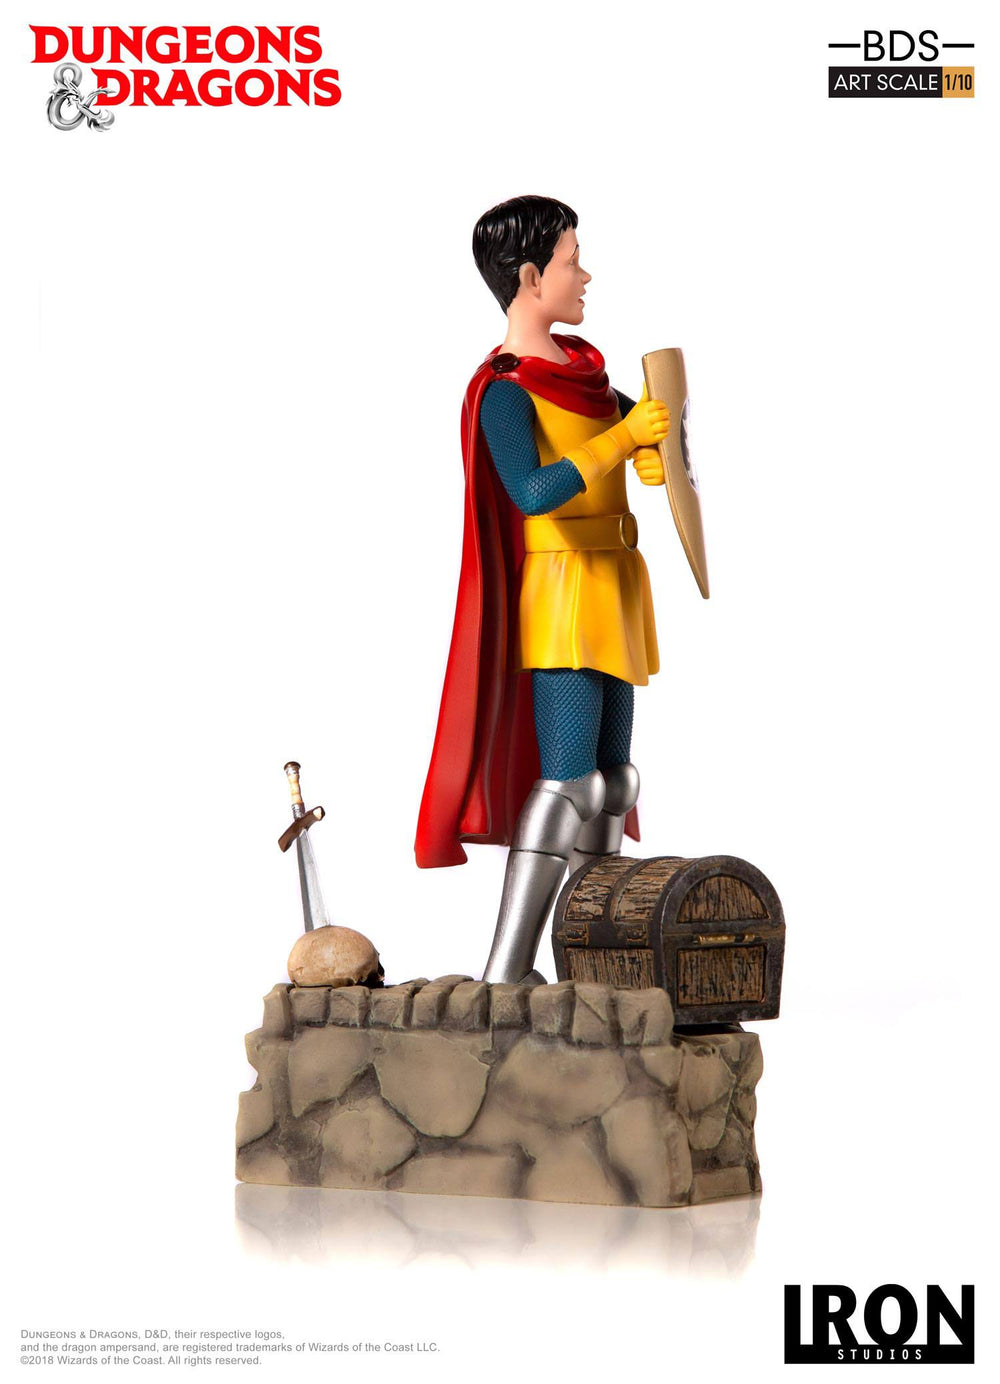 Iron Studios Dungeons & Dragons Eric the Cavalier Battle Diorama Series 1/10 Statue